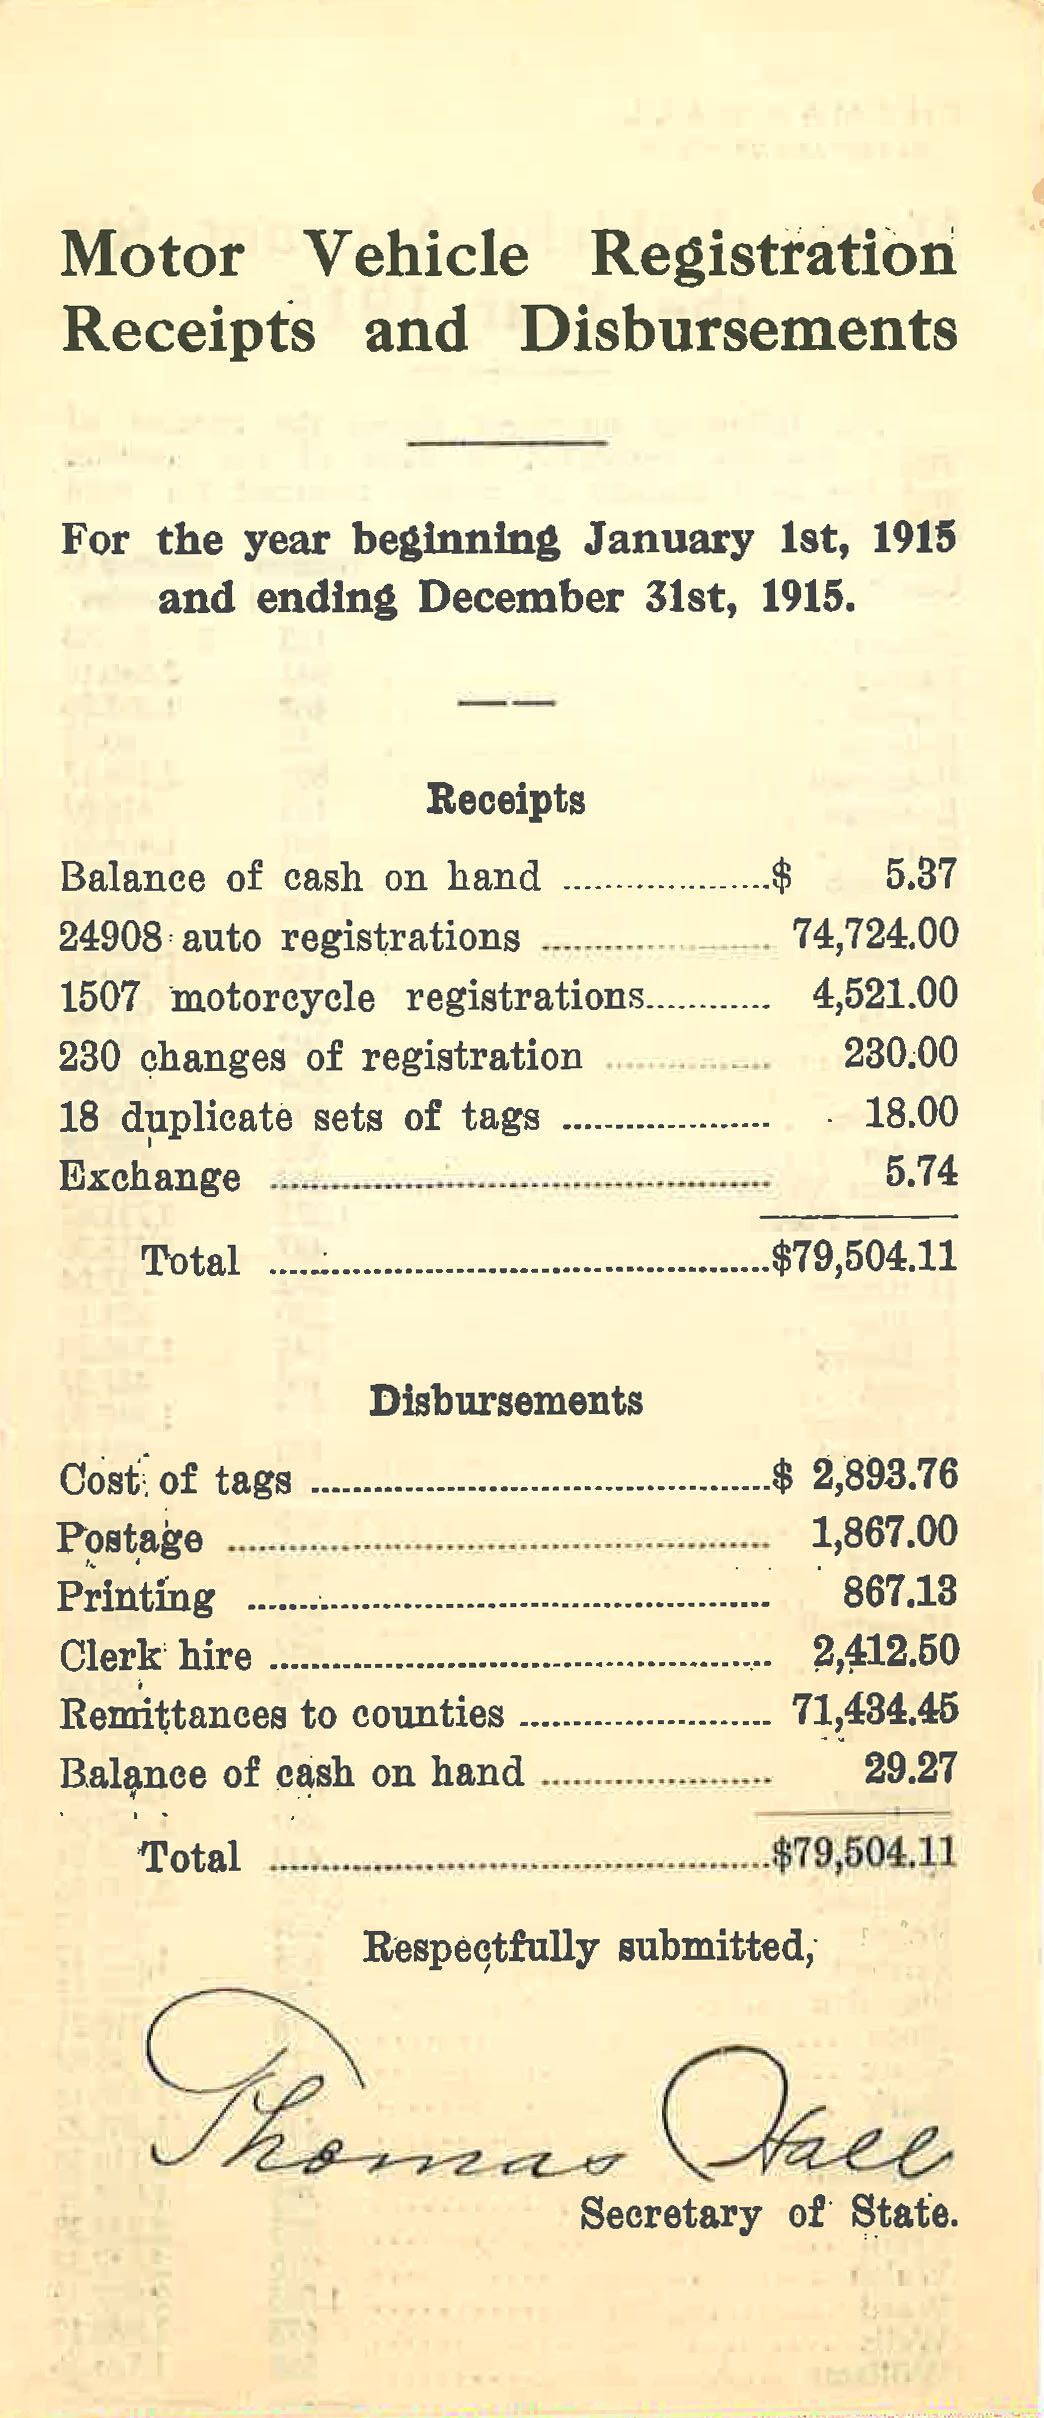 When the state began to license automobiles in 1911, the money paid to the state was divided with the counties. Counties used the money to build and maintain roads and bridges.